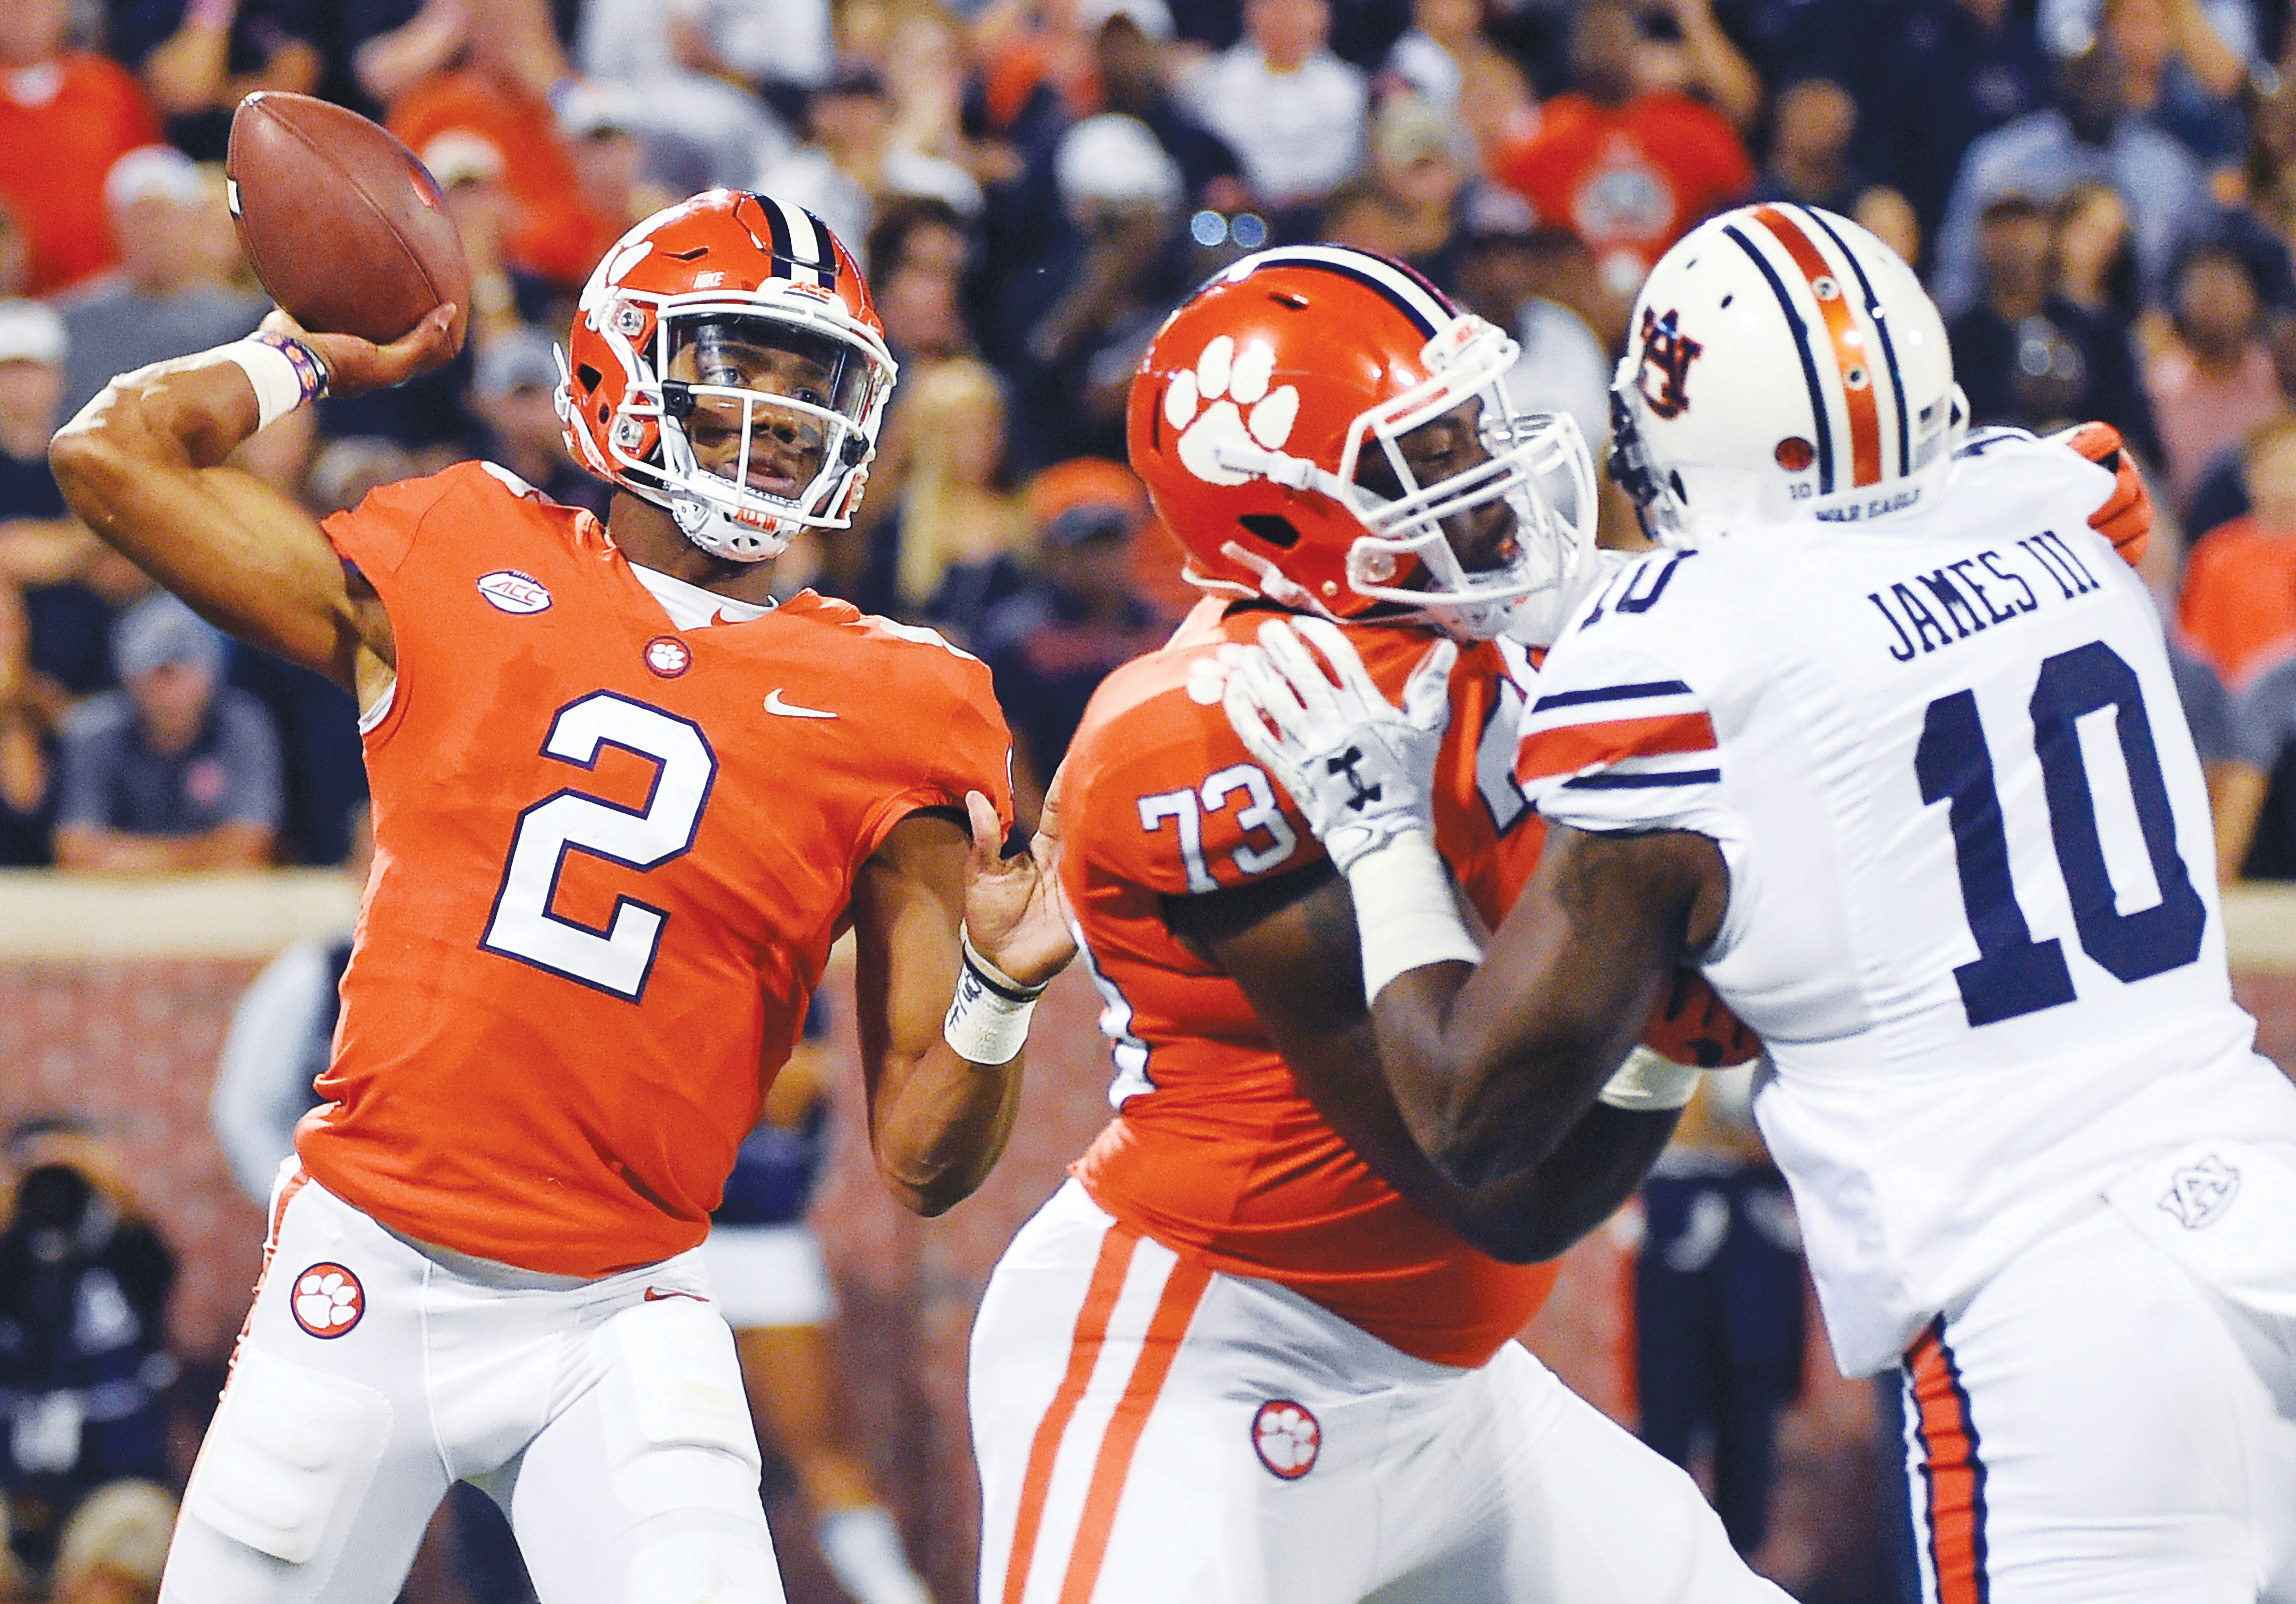 Clemson quarterback Kelly Bryant (2) throws a pass against Auburn during the first half of the Tigers' 14-6 win over the SEC opponent in Clemson.